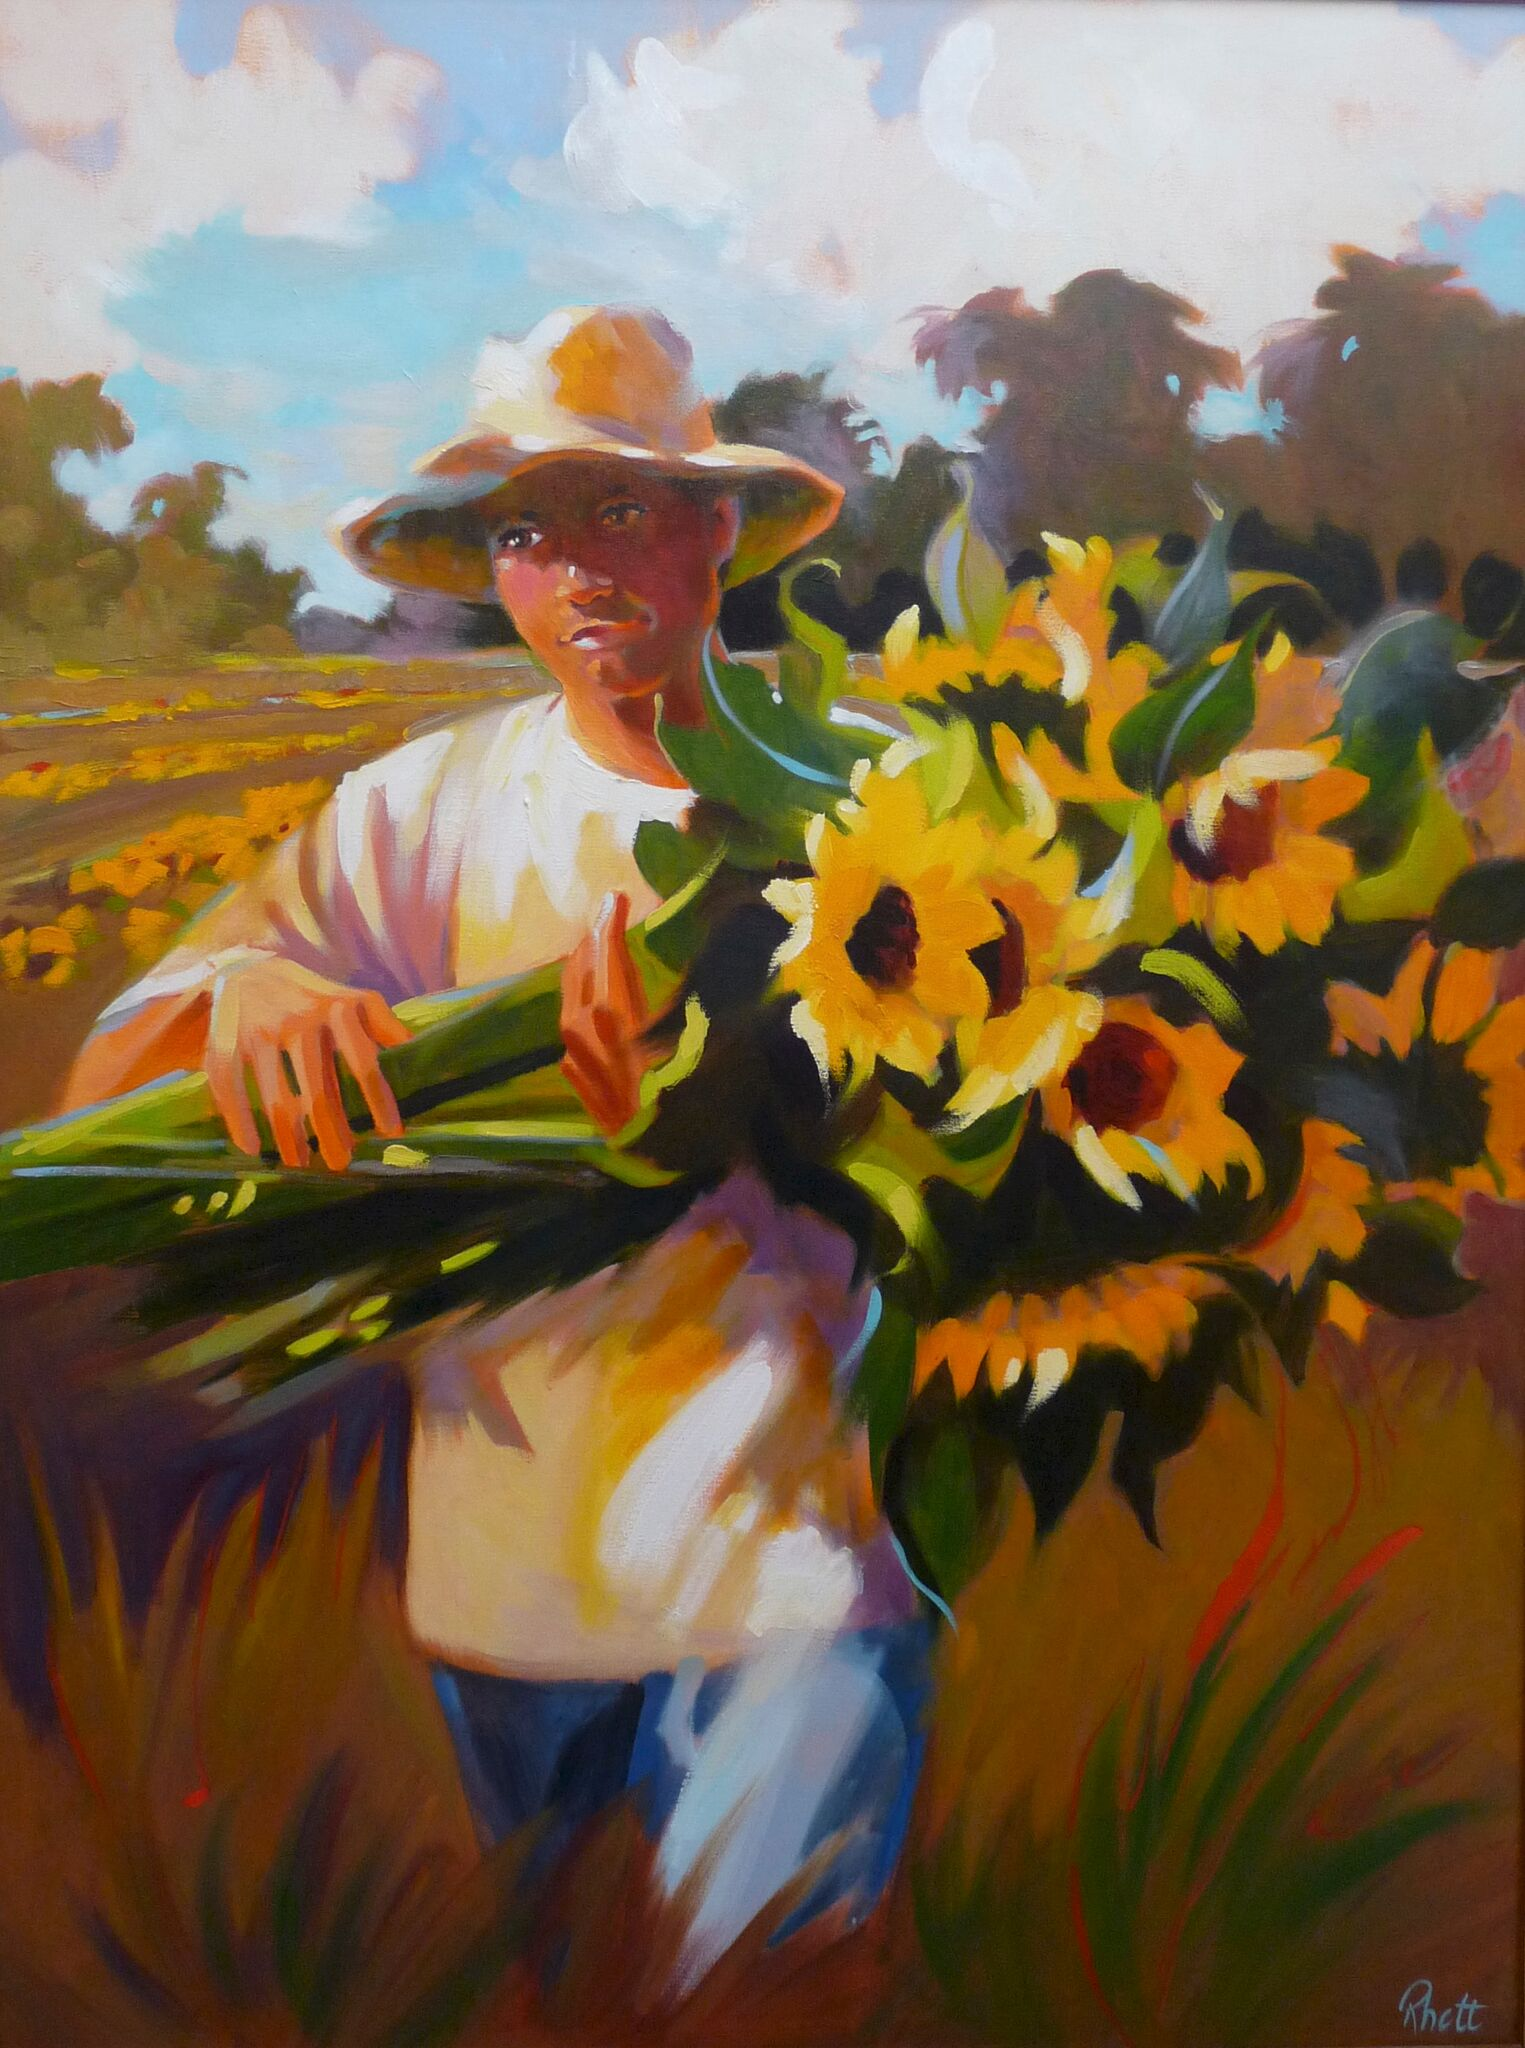 In From the Fields, 40 x 30